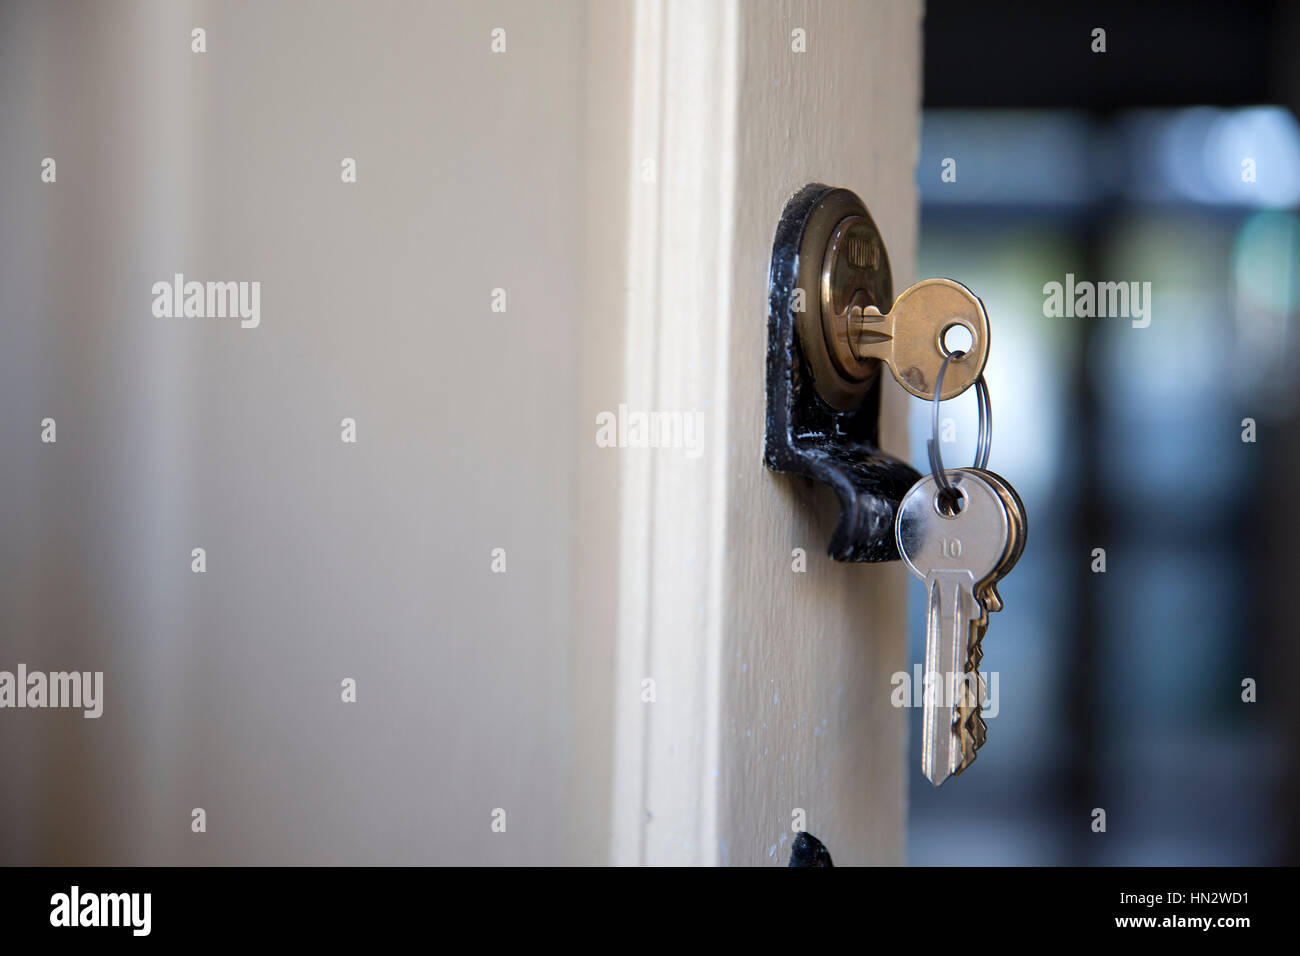 A set of house keys are seen in a lock on the front door to a house ...